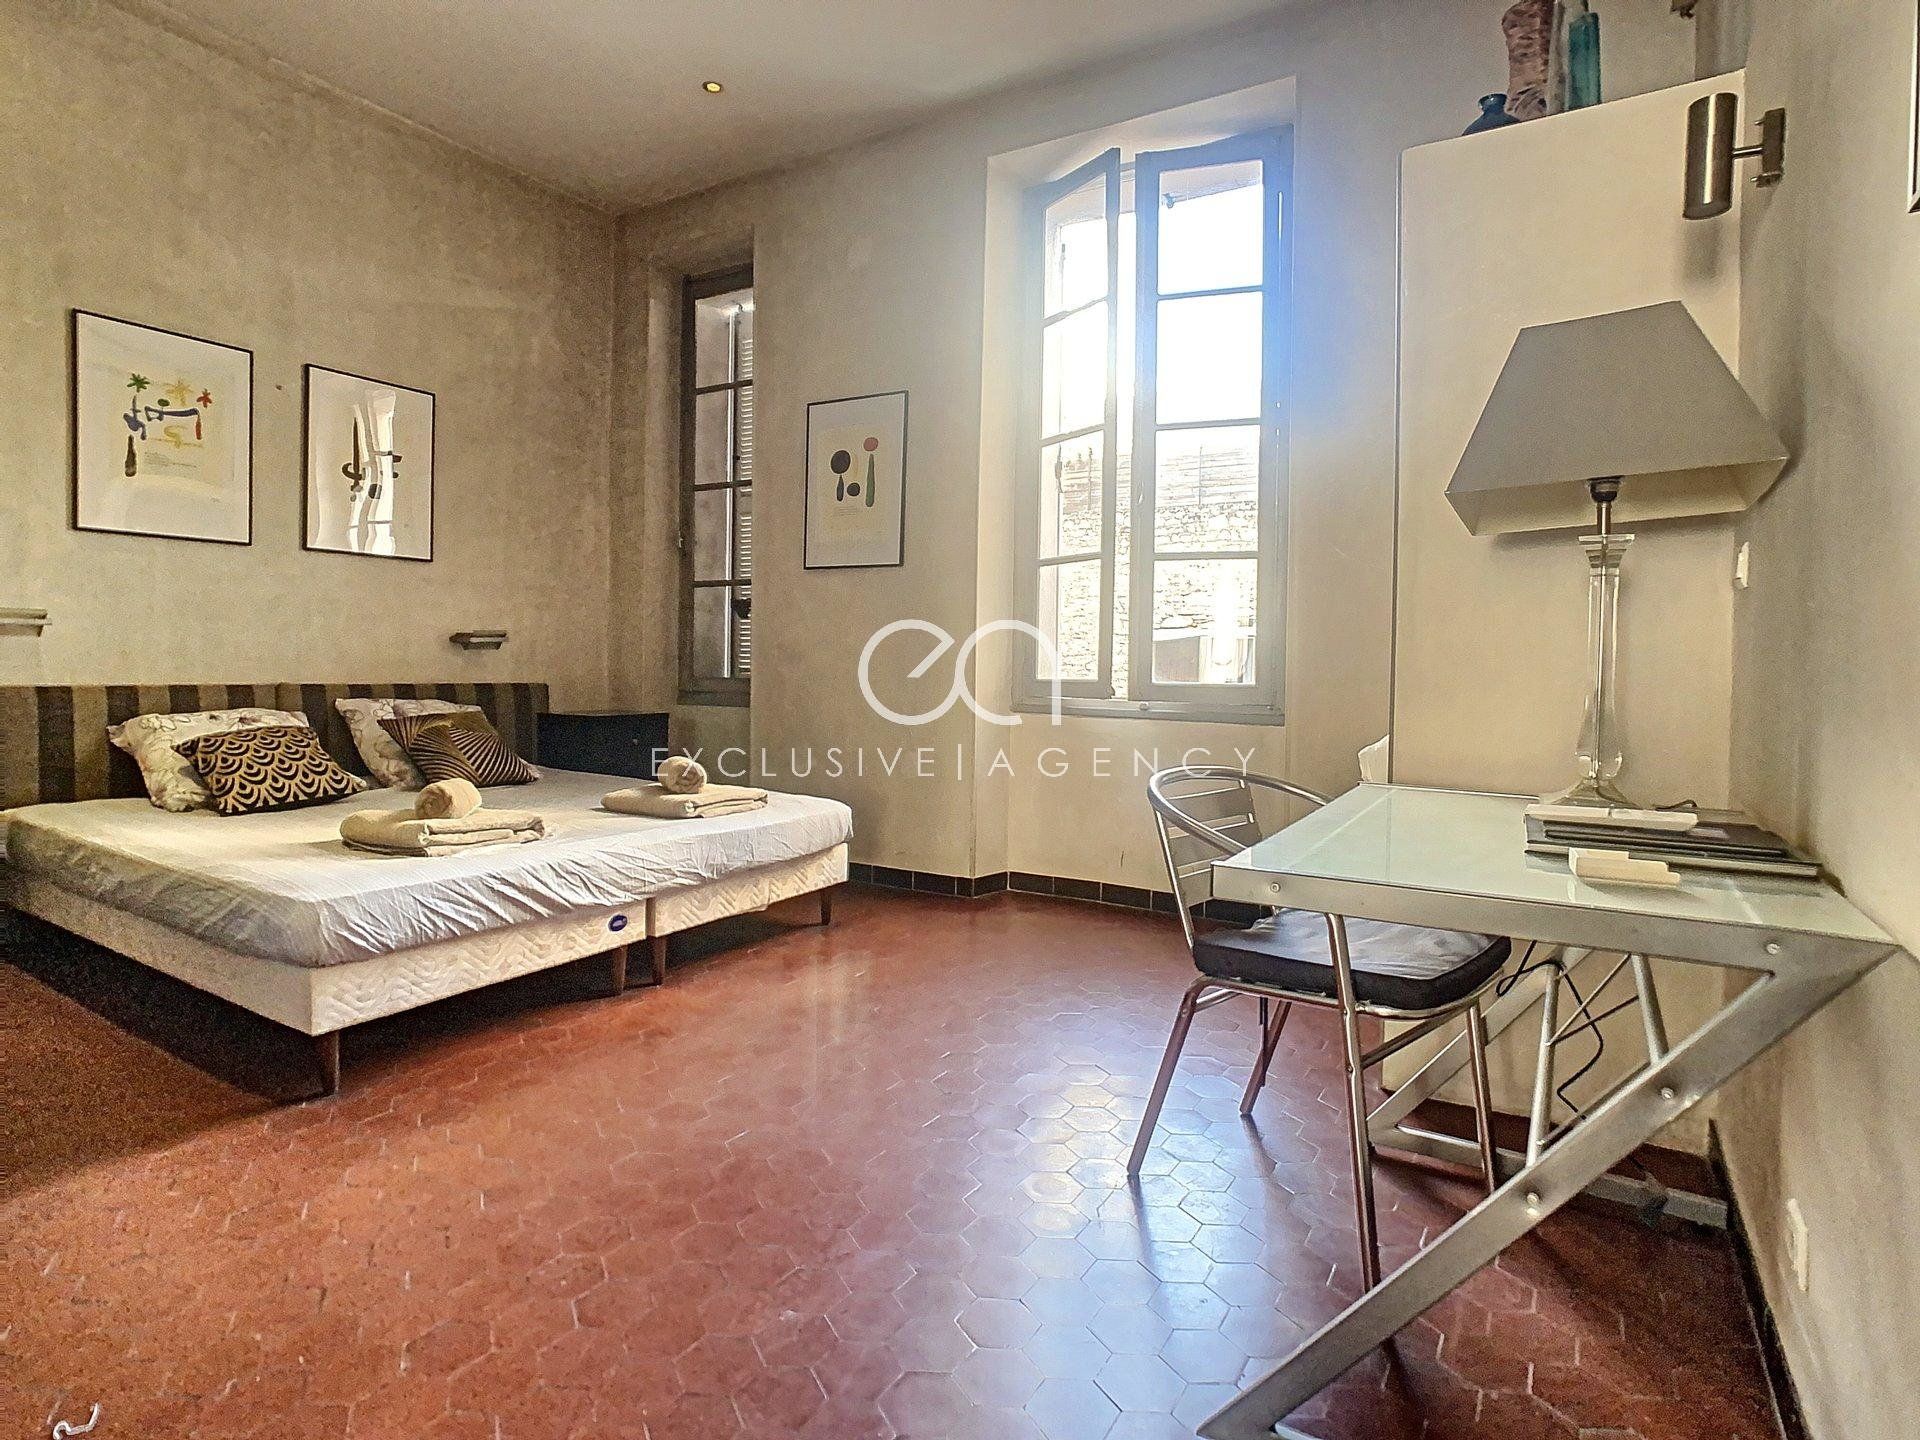 Accommodation Cannes Center 3-bedroom apartment 85sqm for 2 to 6 people.